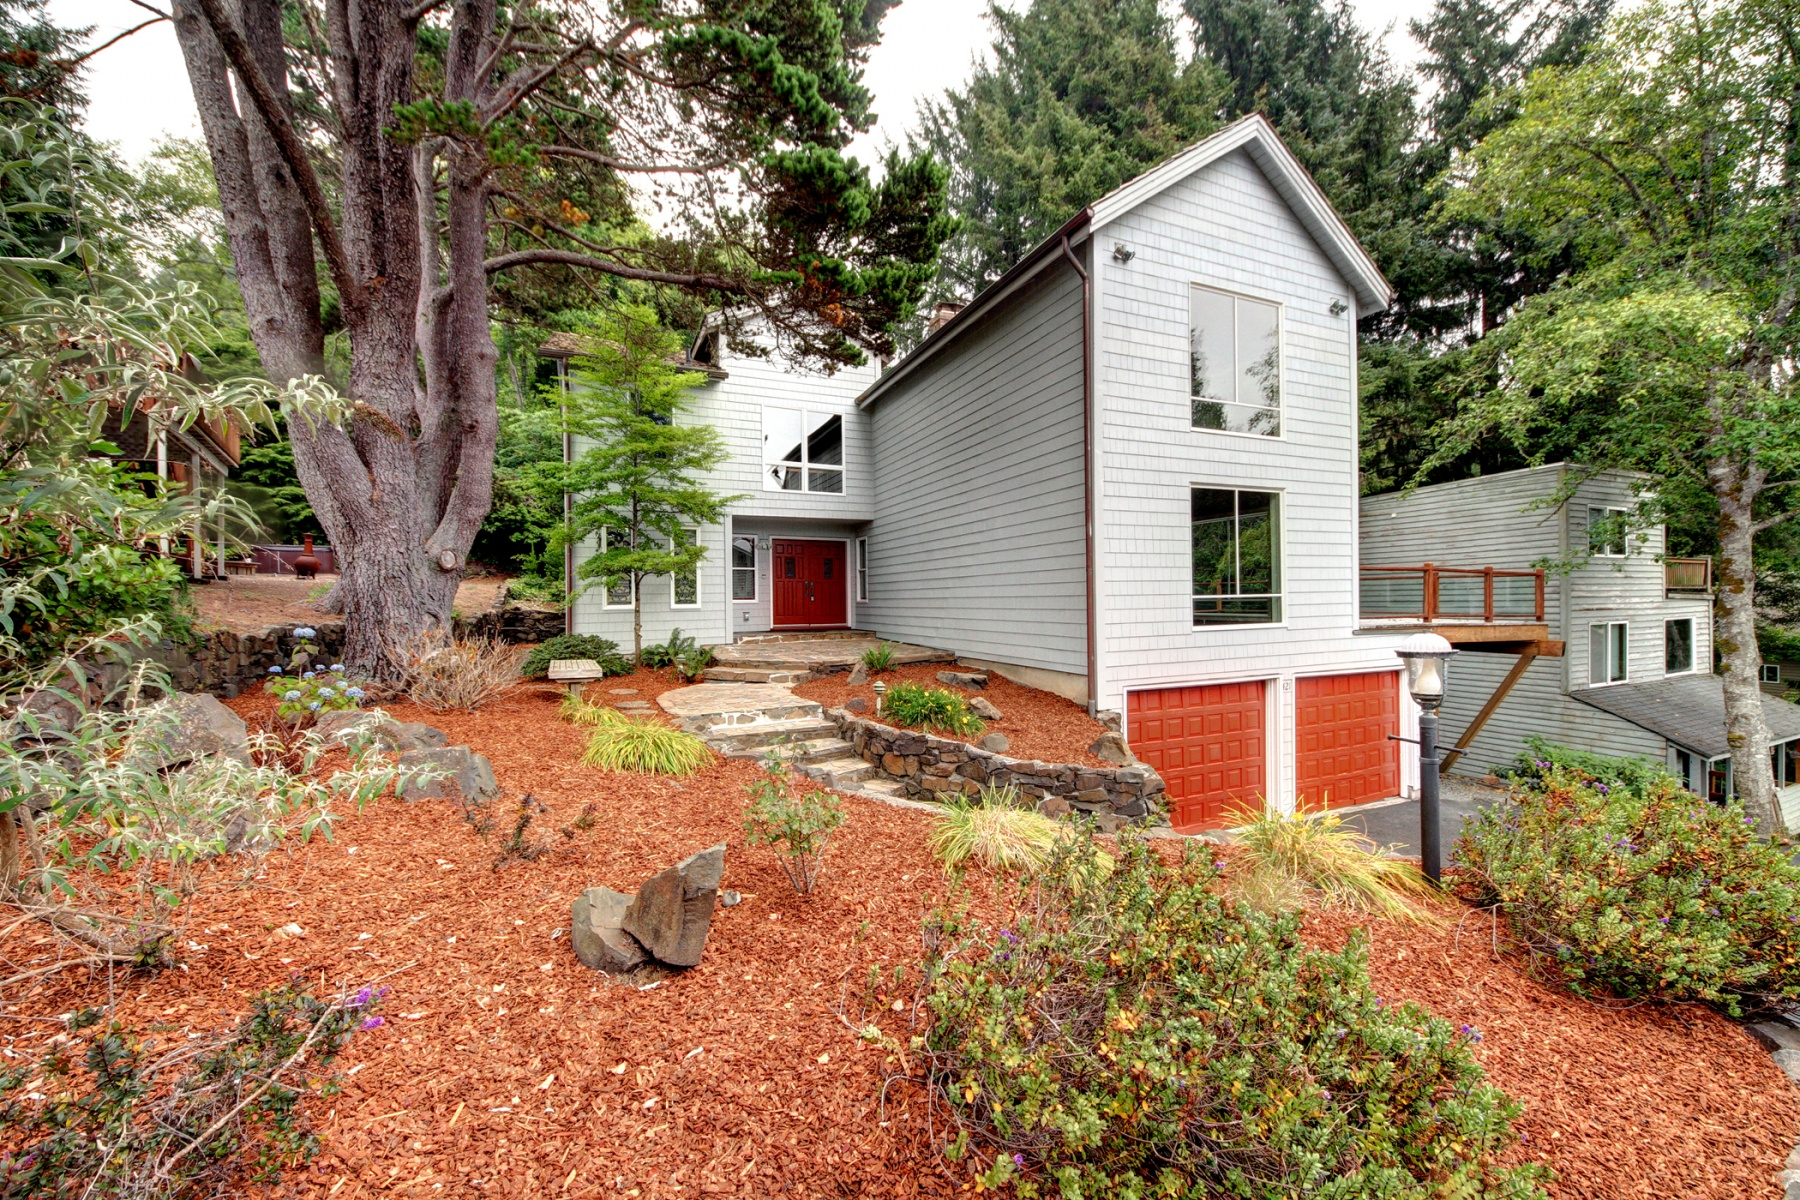 Other Residential Homes for Active at 421 Chilkoot Trl Cannon Beach, OR 97110 421 Chilkoot Trl Cannon Beach, Oregon 97110 United States